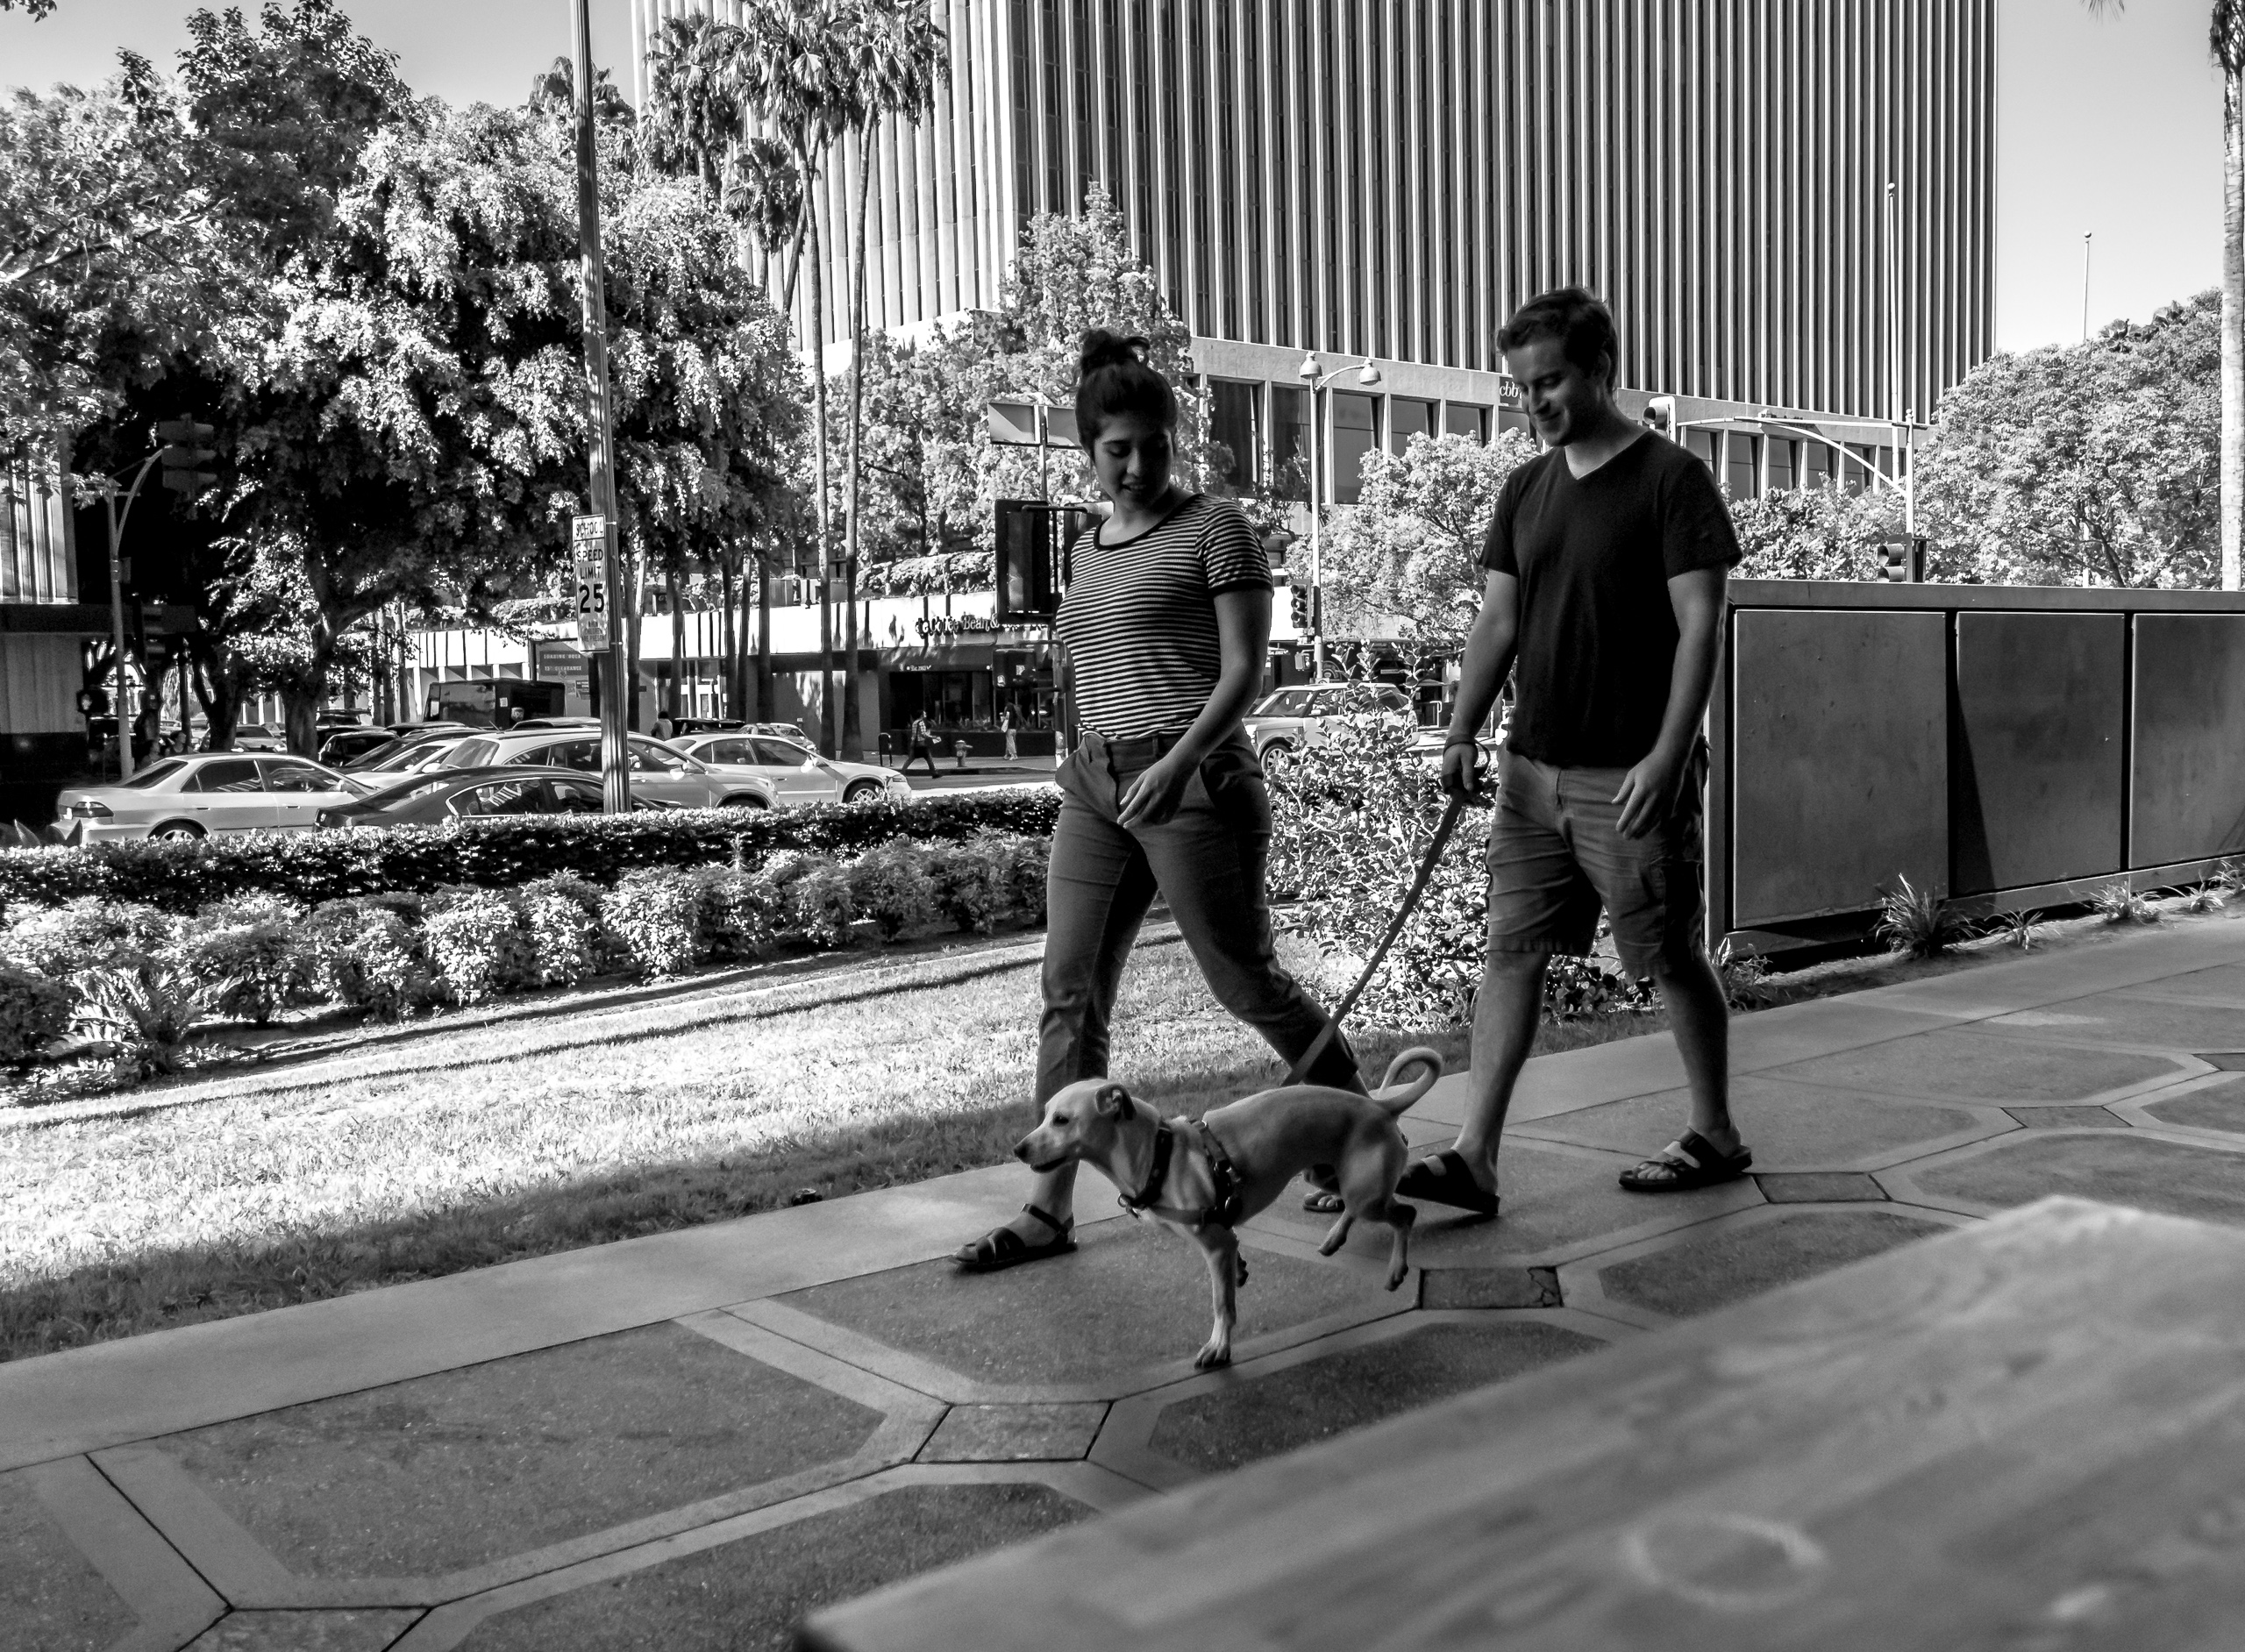 A couple and a dog walking down Wilshire Blvd in Los Angeles